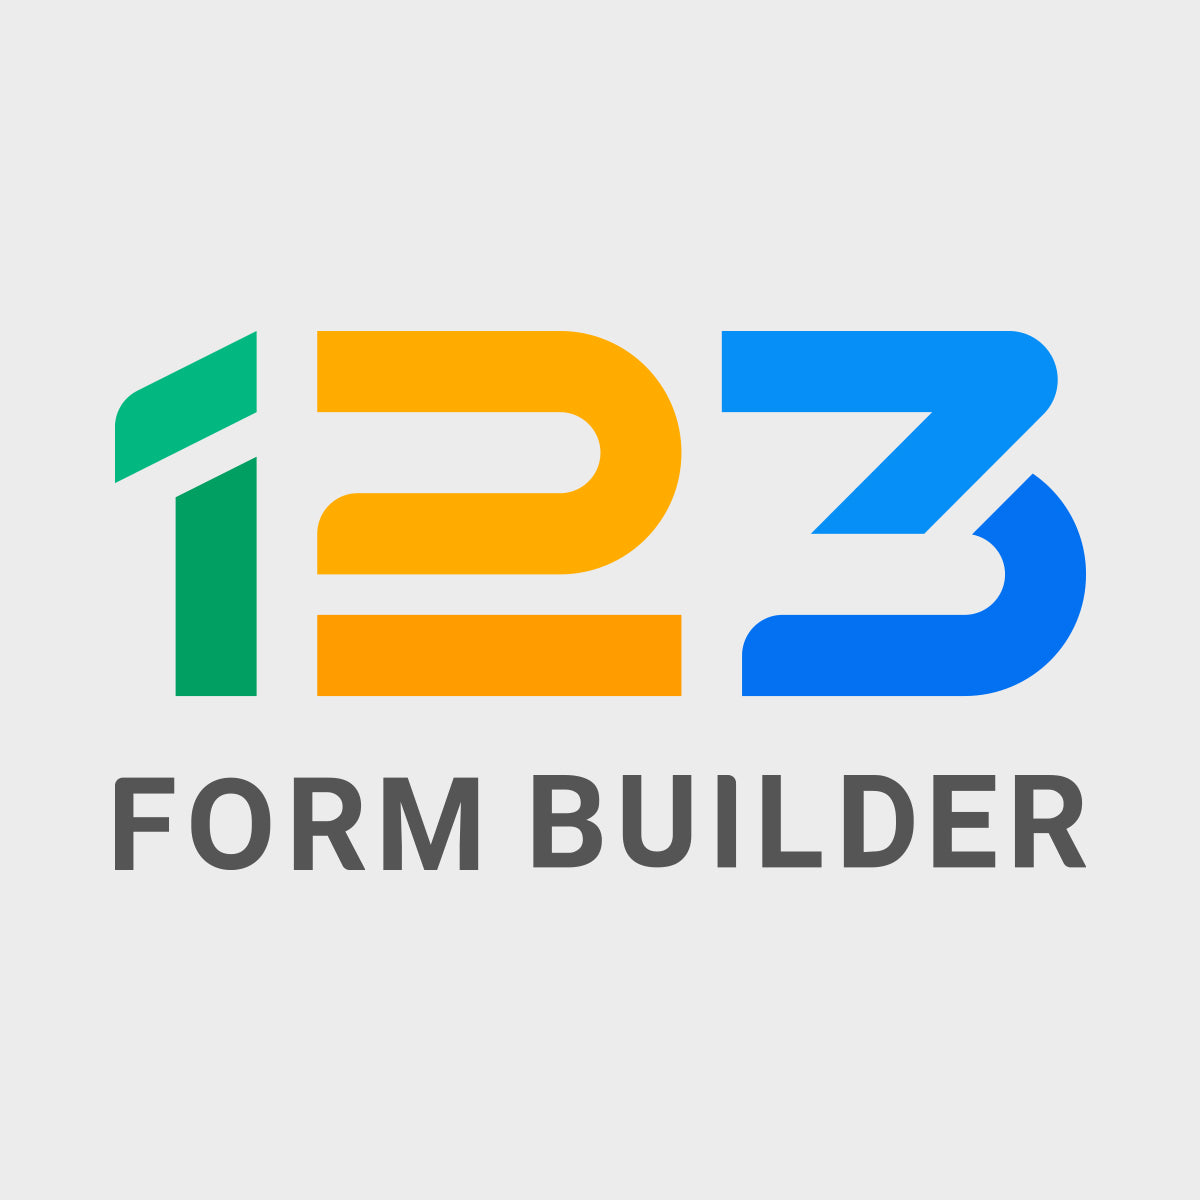 Hire Shopify Experts to integrate 123 Form Builder app into a Shopify store